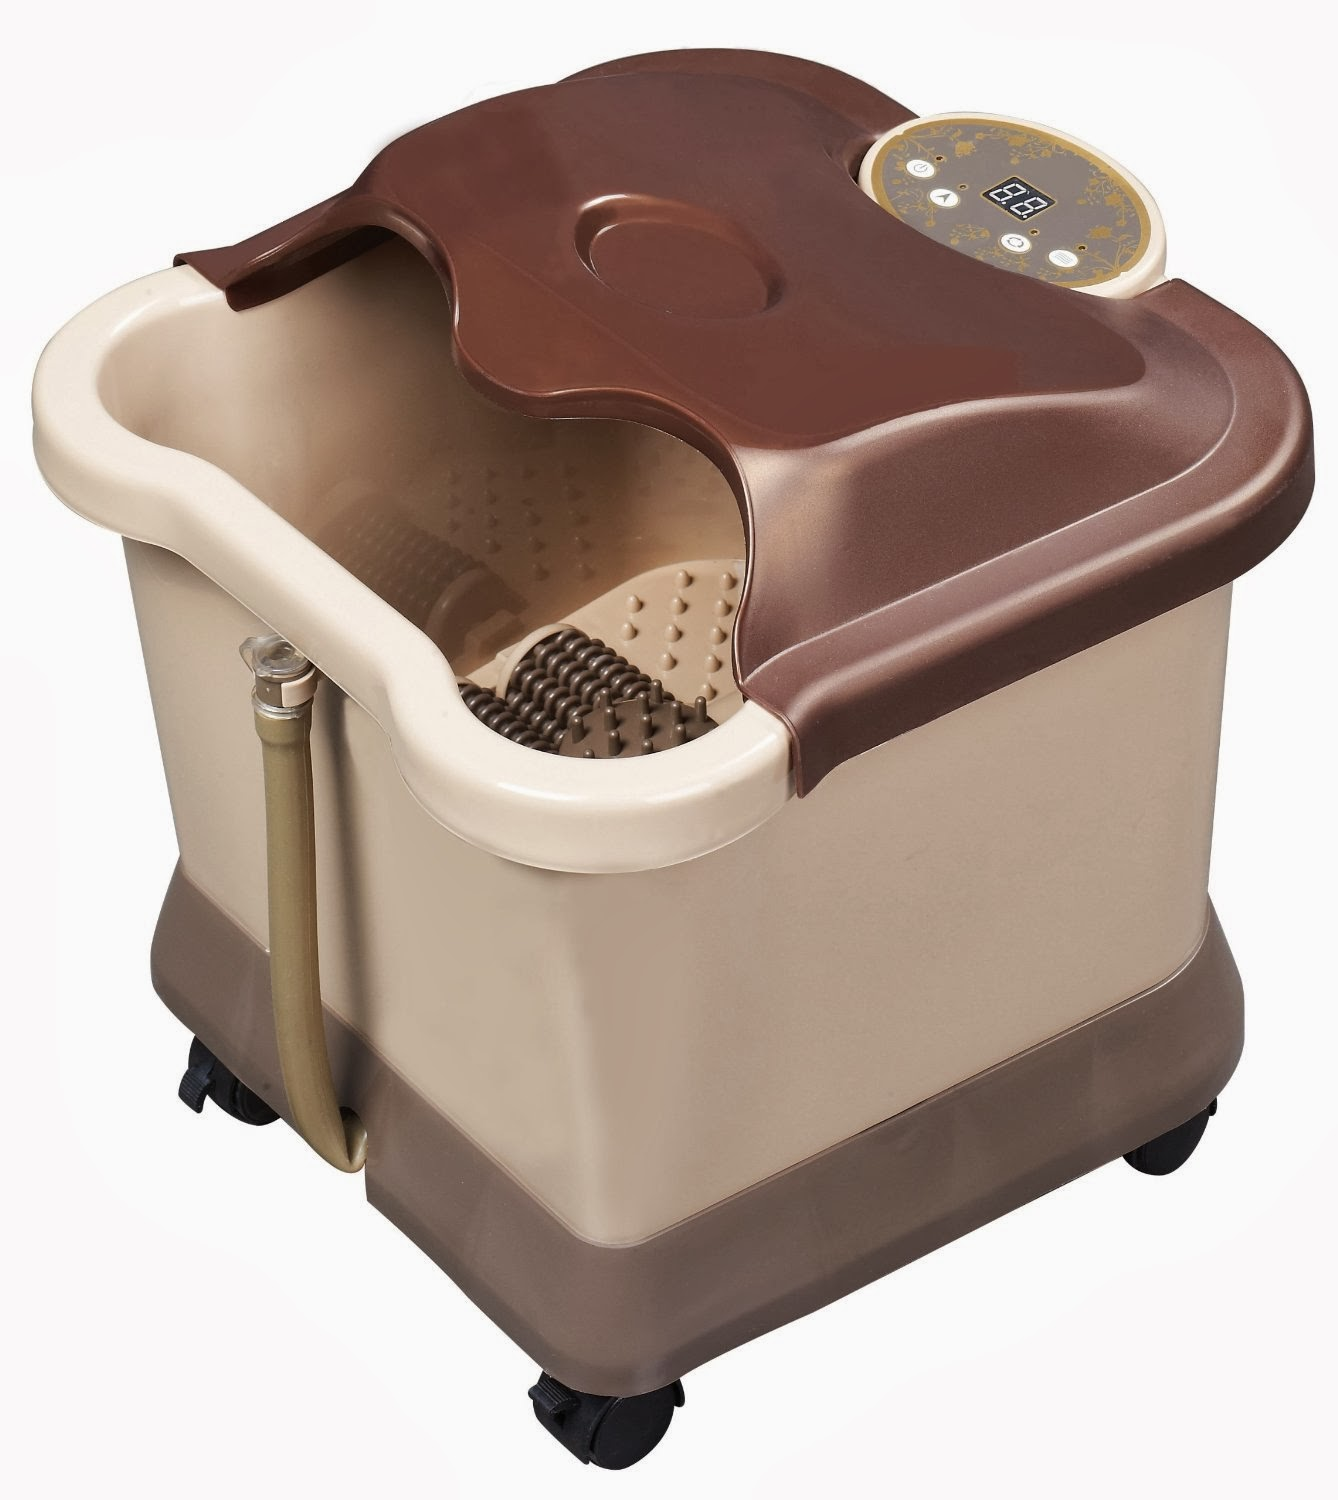 Foot Spa Machine Amazon